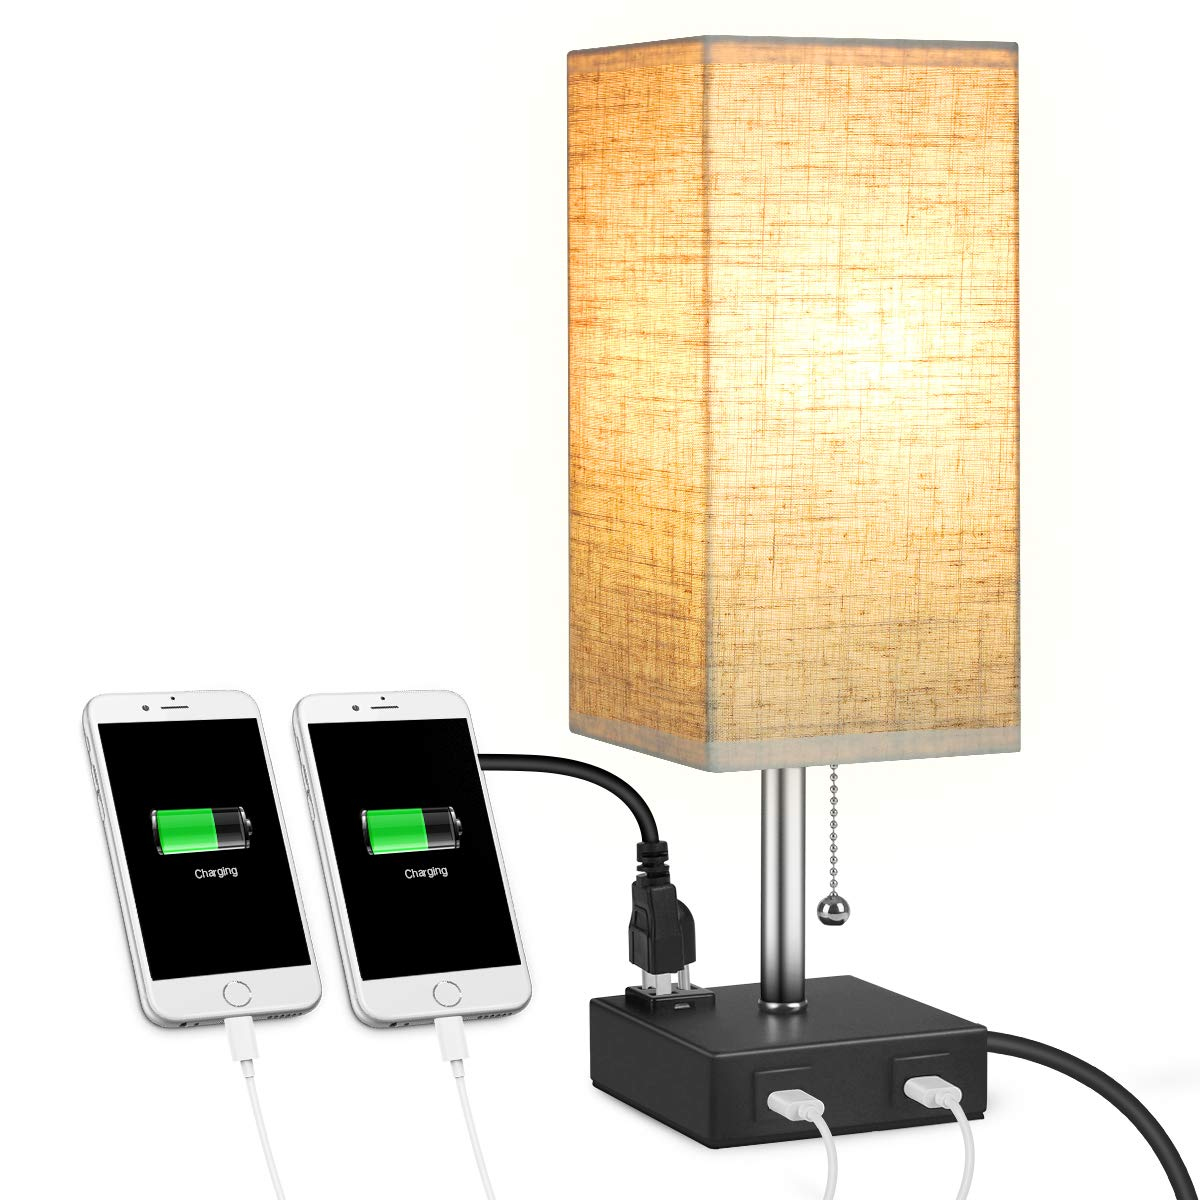 USB Bedside Table Lamp, MOICO Square Fabric Shade Nightstand Lamp with 2 USB Charging Port and one AC Outlets, Modern Design Desk Lamp for Bedroom, Dresser, Living Room, Kids Room, College Dorm